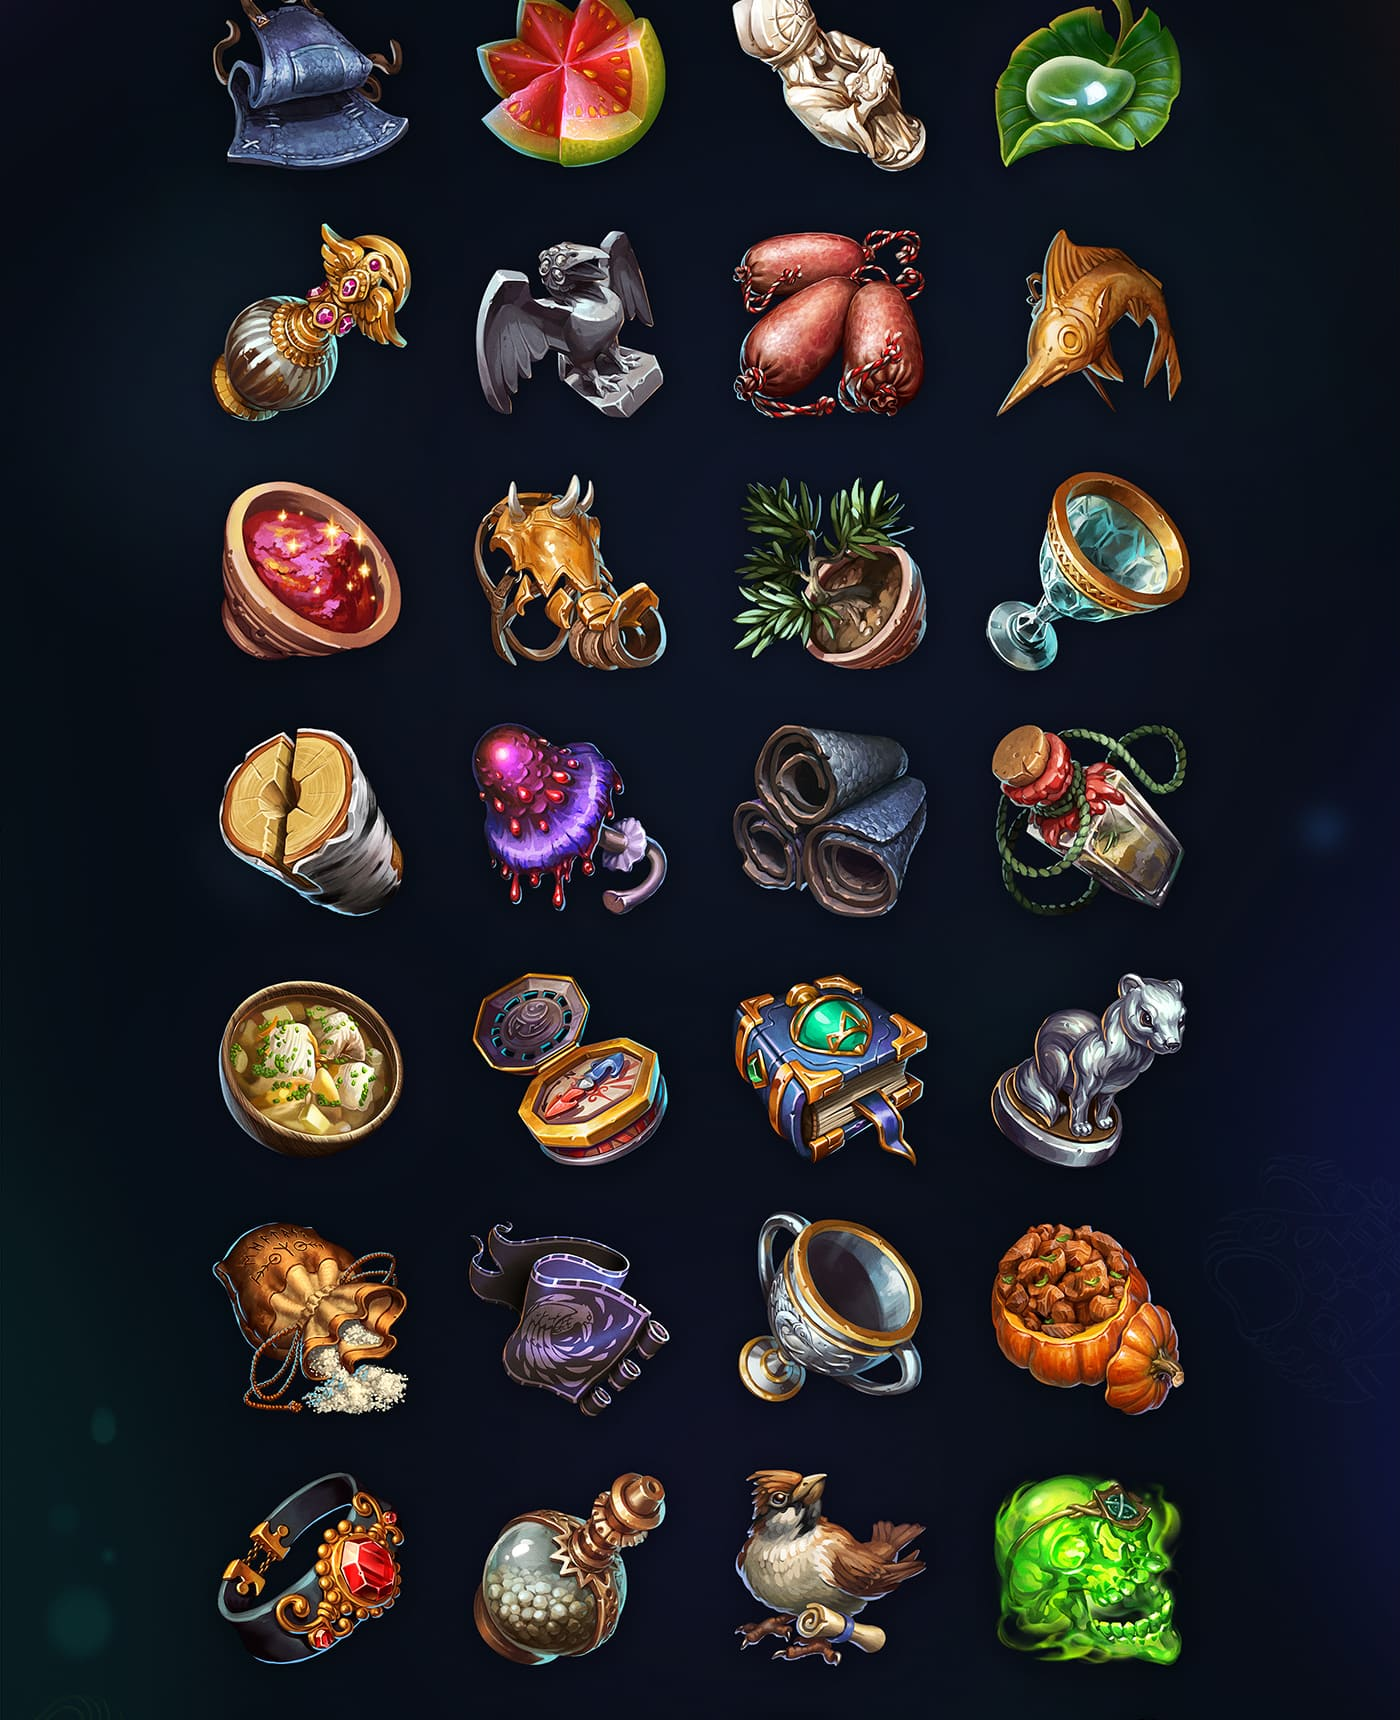 game icons, ui icons, video game icons, mobile icons, mobile game icons, game ui icons, 2d icons